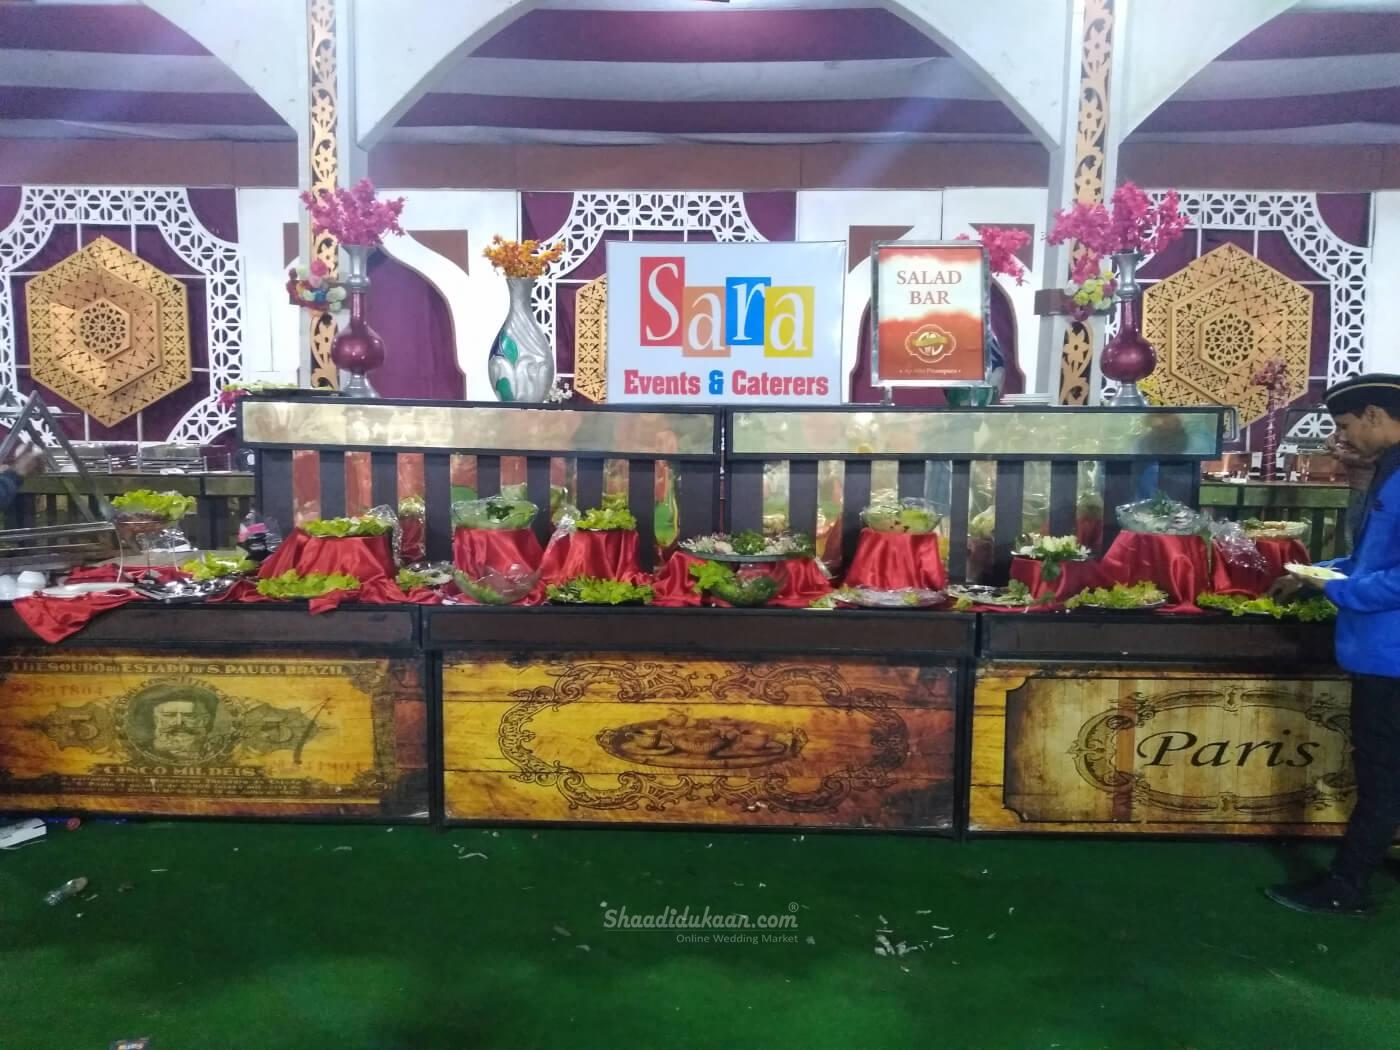 Sara Events & Caterers